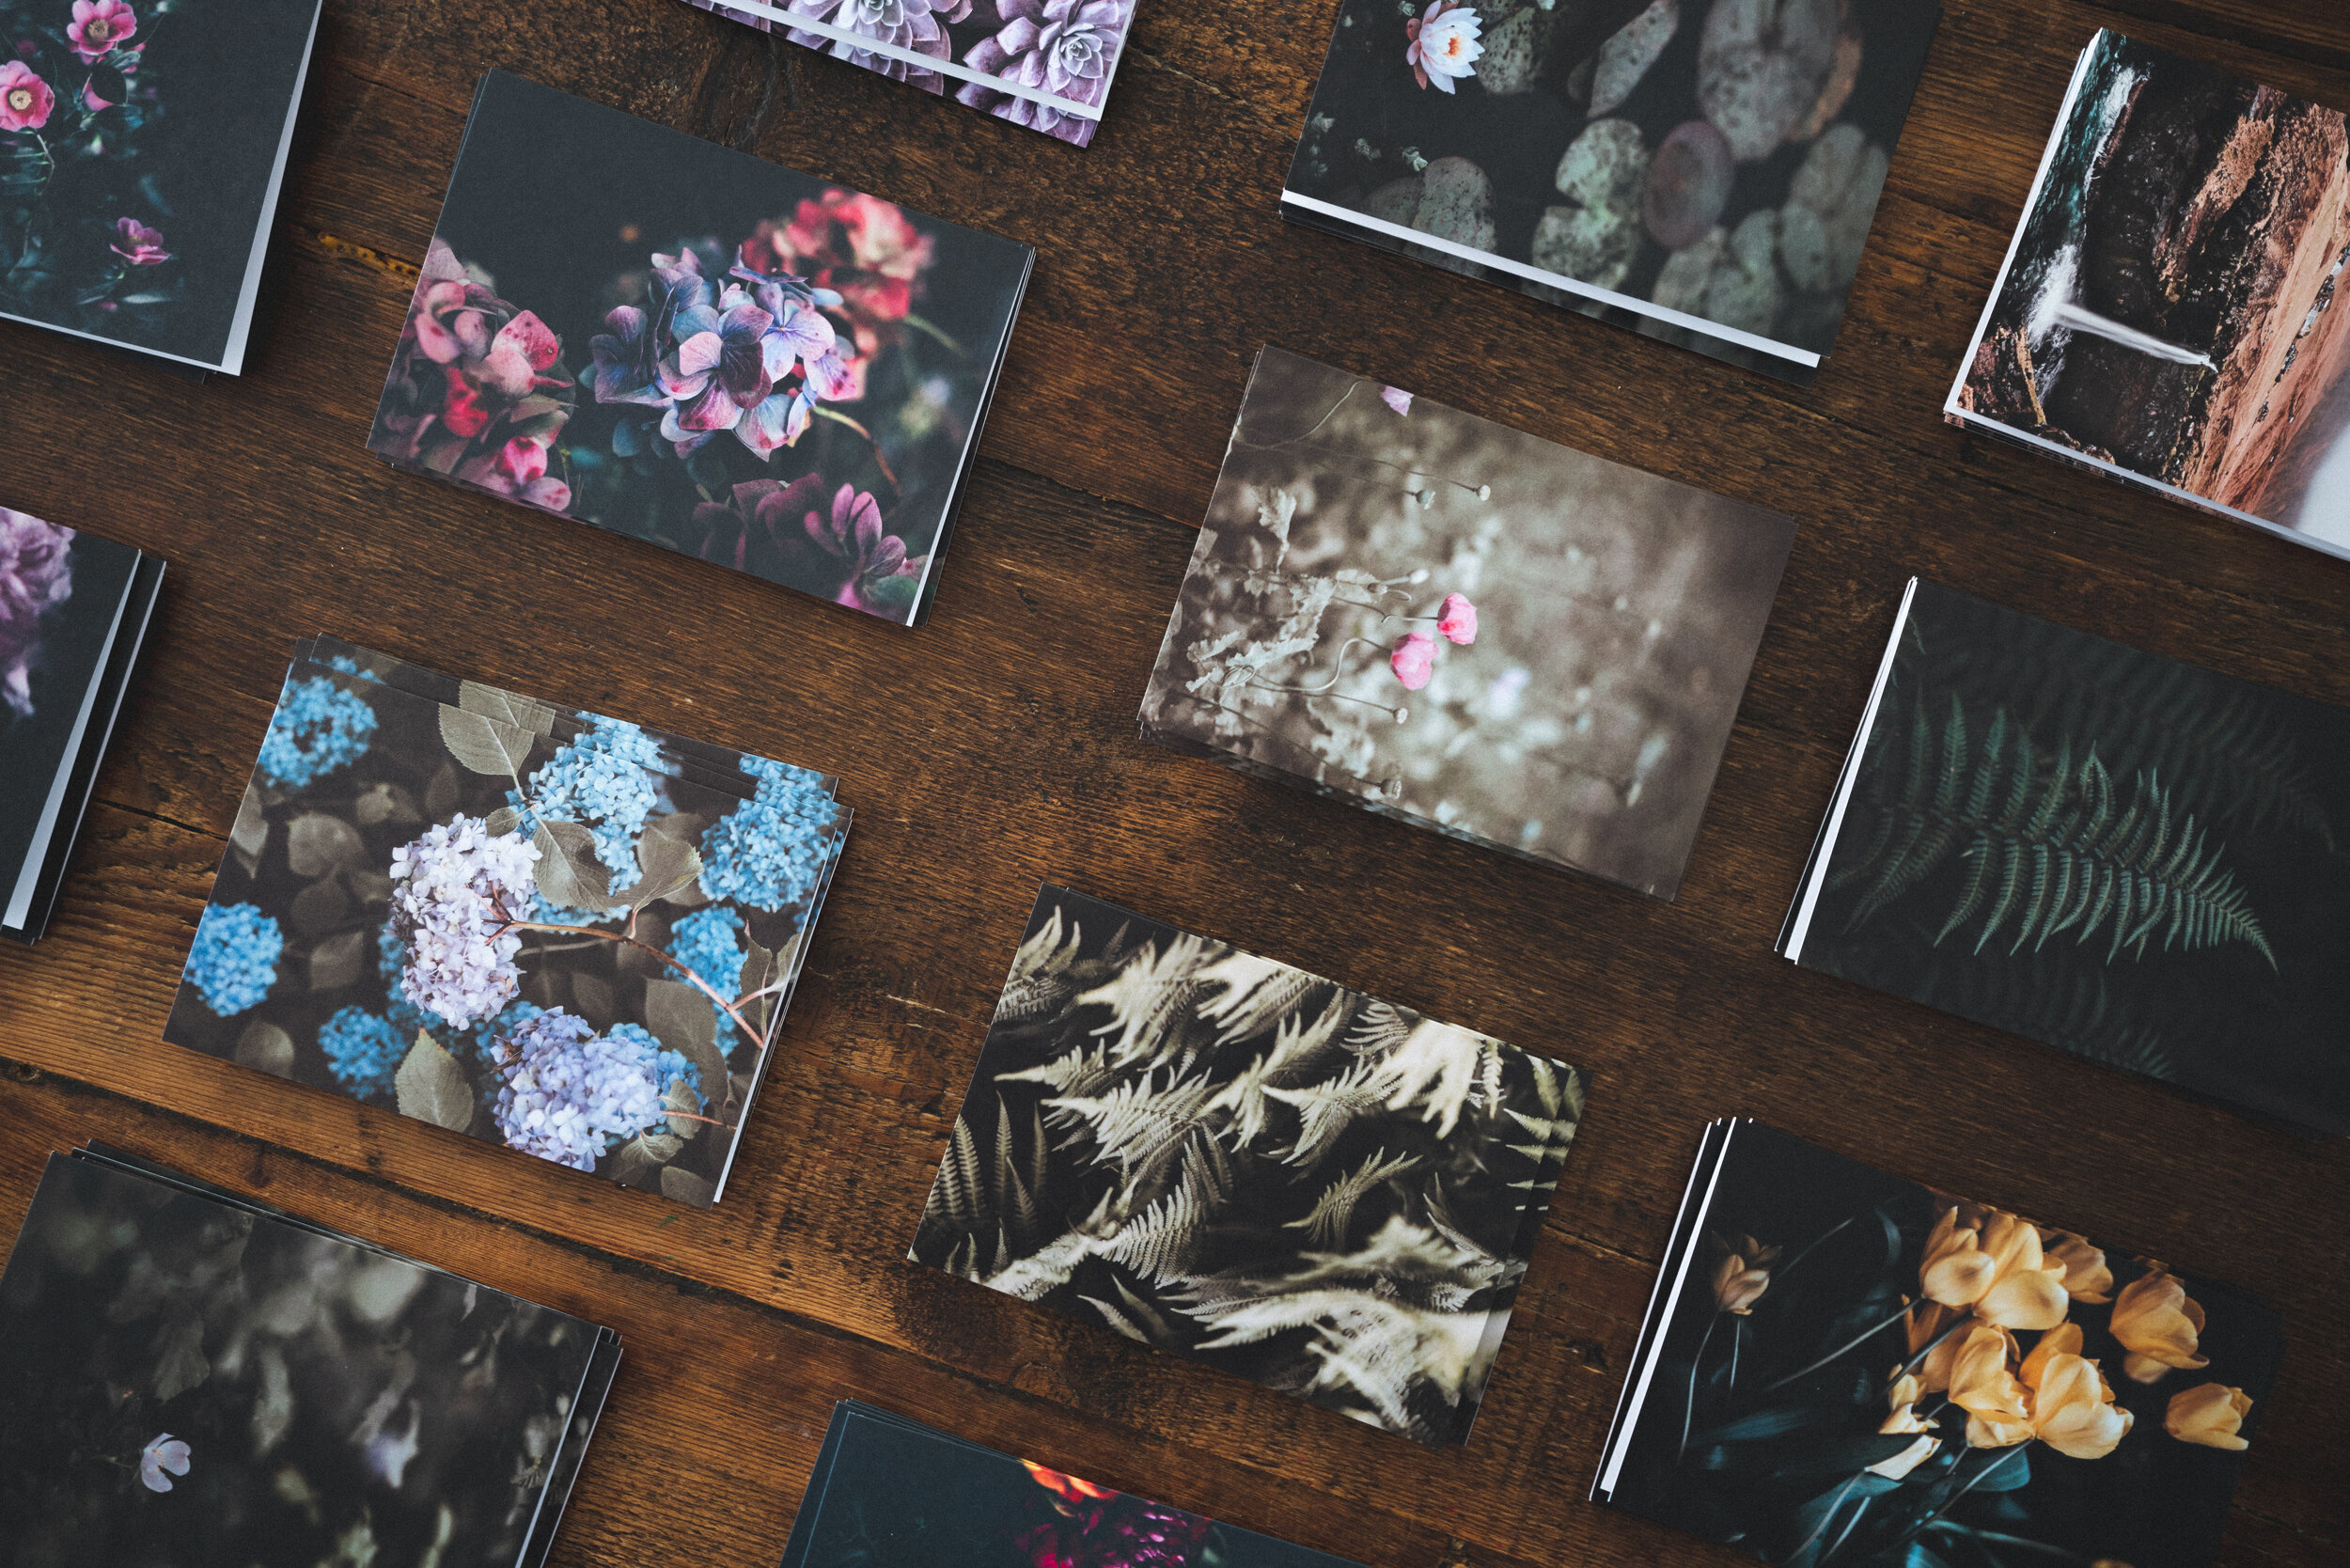 Custom Prints  - We can create a custom one-of-a-kind graphic for your photos. It's a great way to tie the experience into the theme of your event and makes the photos just that much memorable.